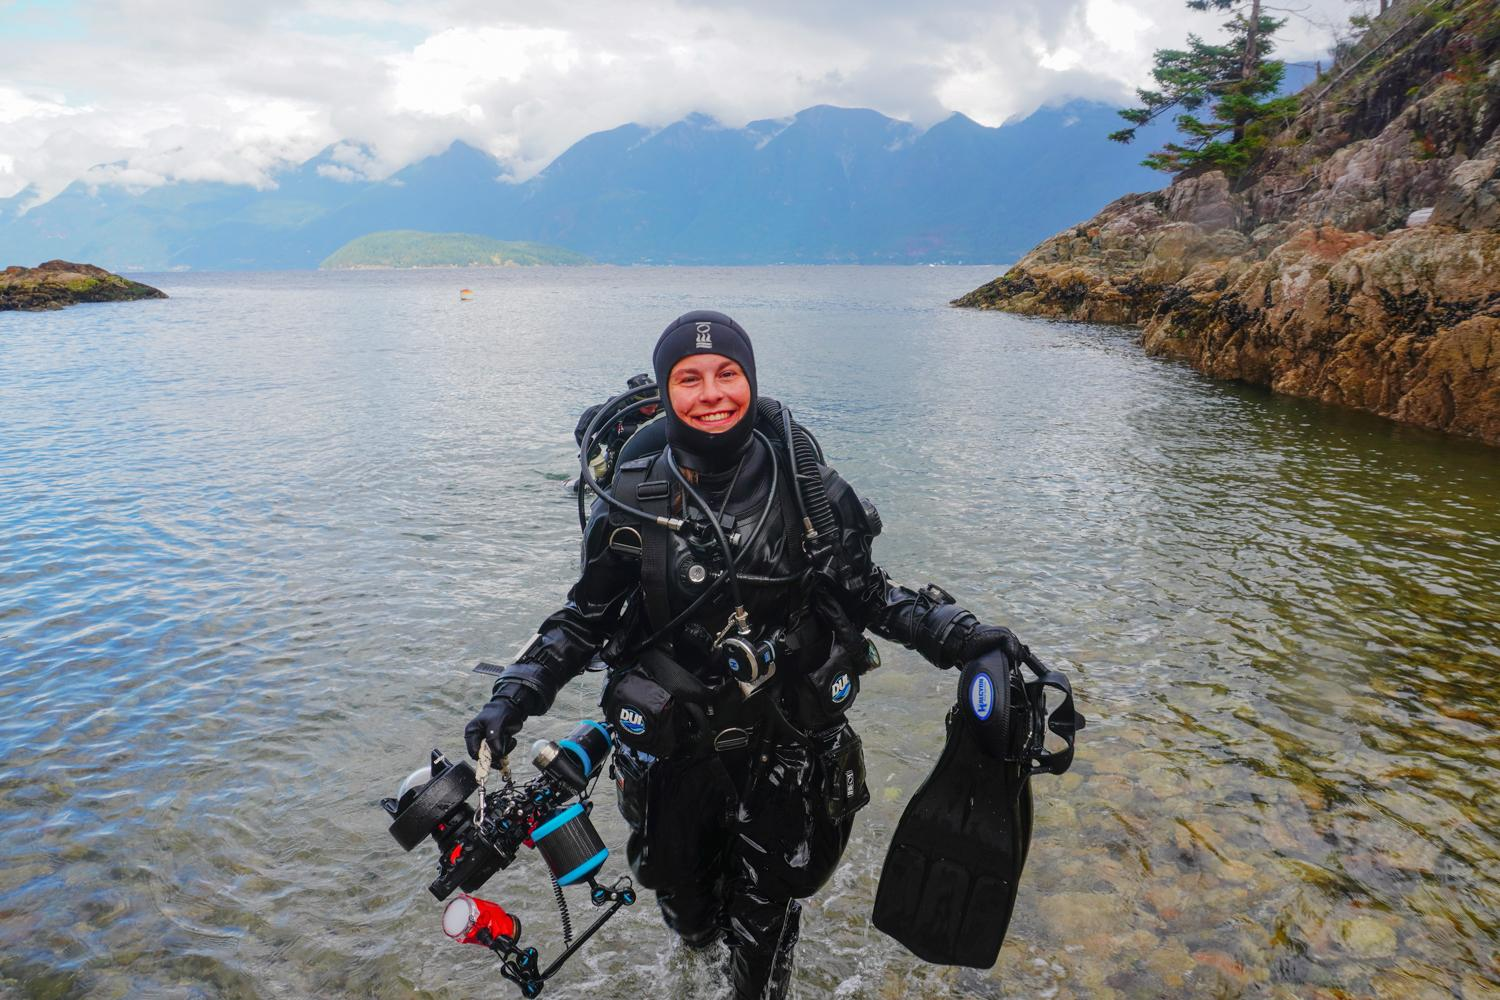 Diving The Pacific Coast of Canada and the USA